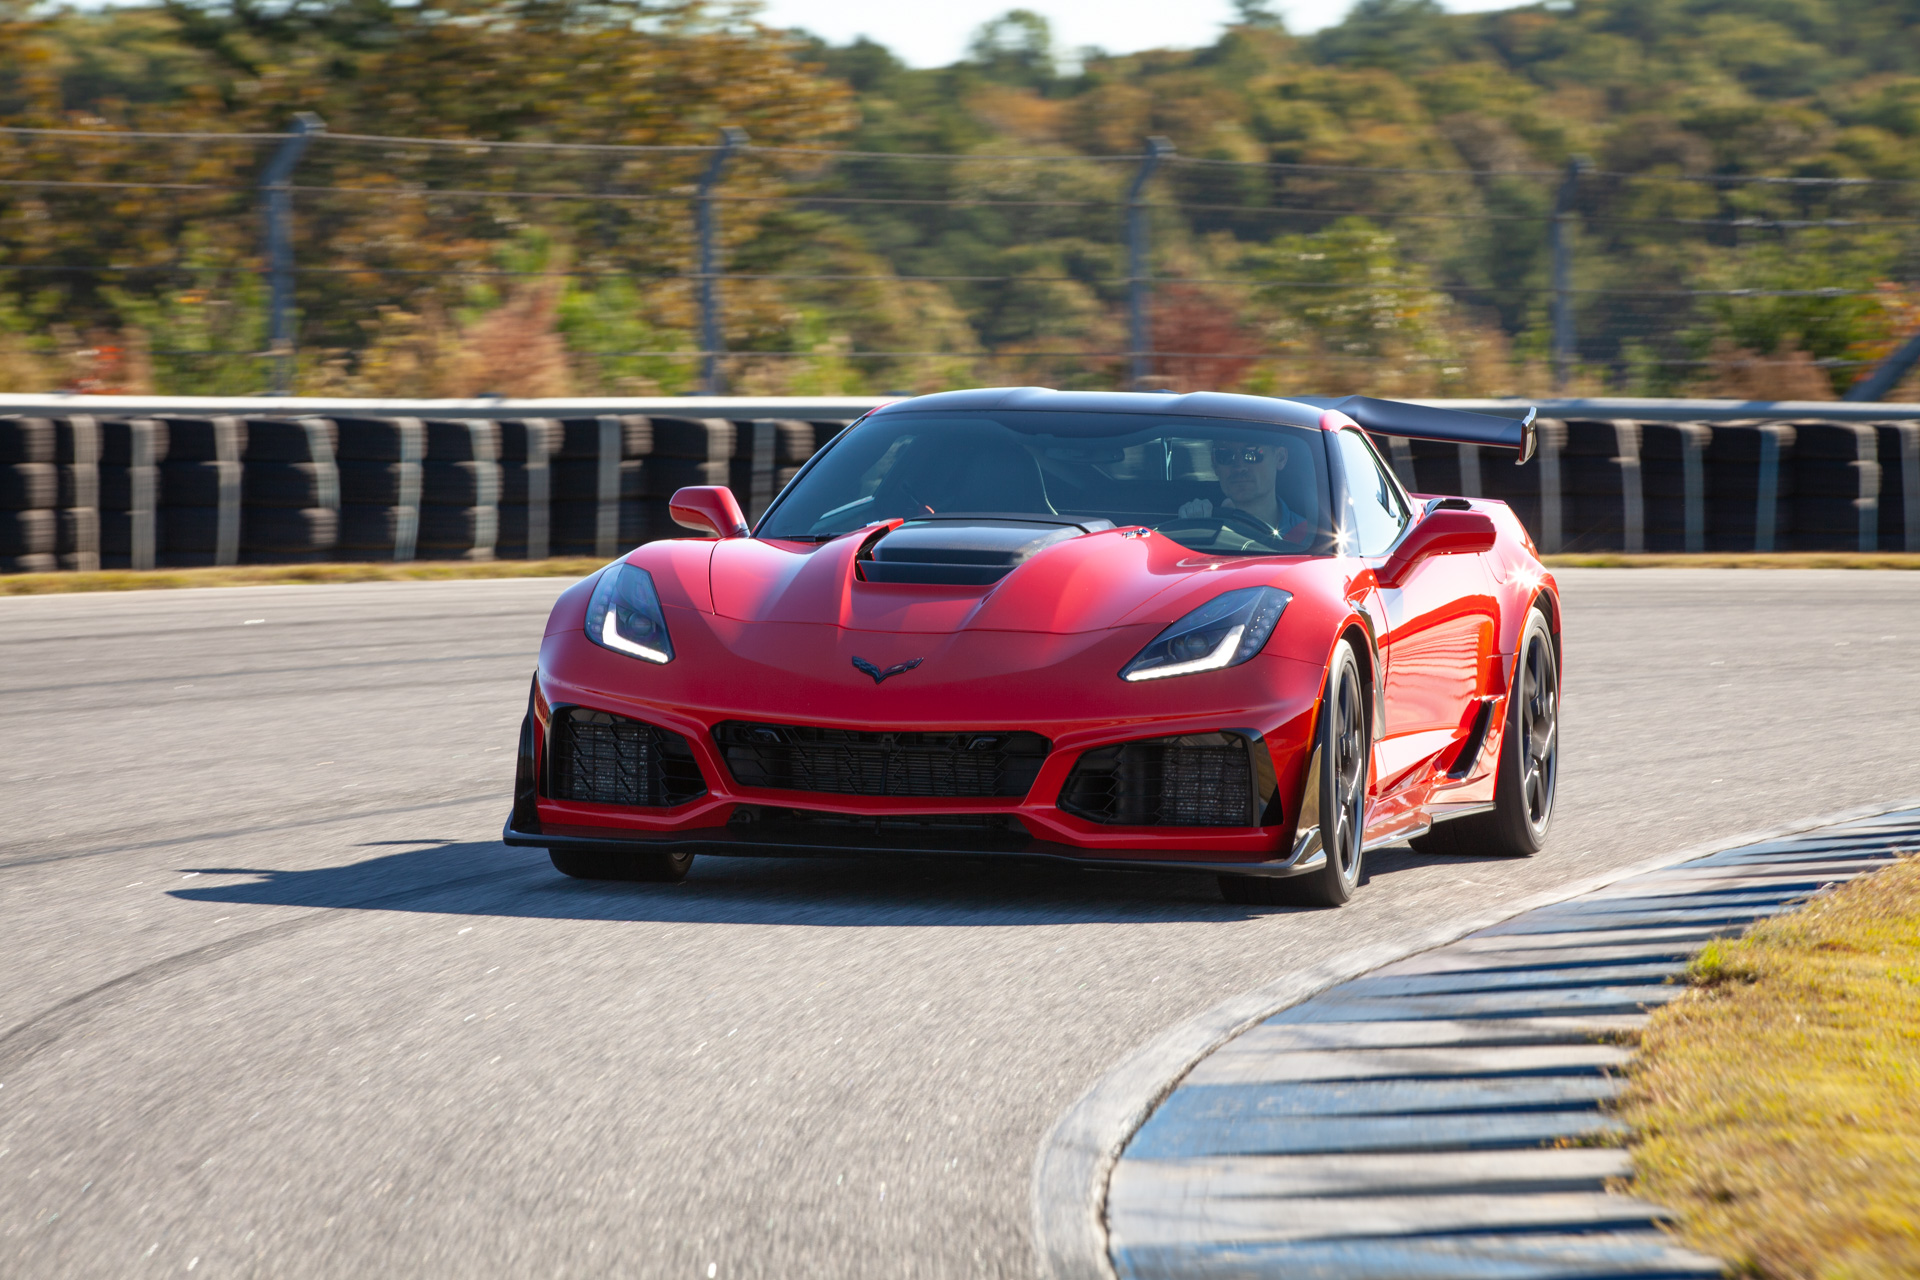 2019 Chevy Corvette Zr1 Set A Disappointing Nurburgring Lap Time